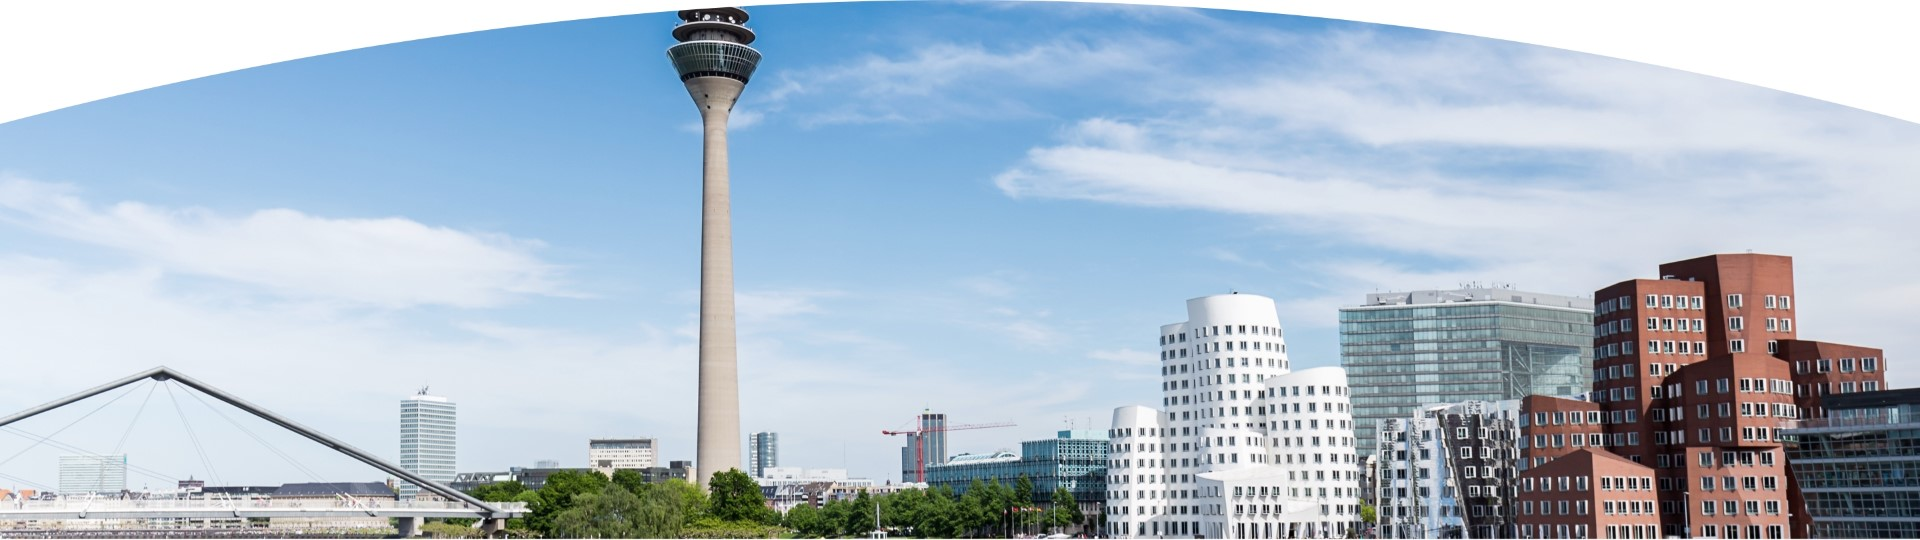 Blue sky with view of the TV tower, modern buildings, and a bridge in summer in Duesseldorf